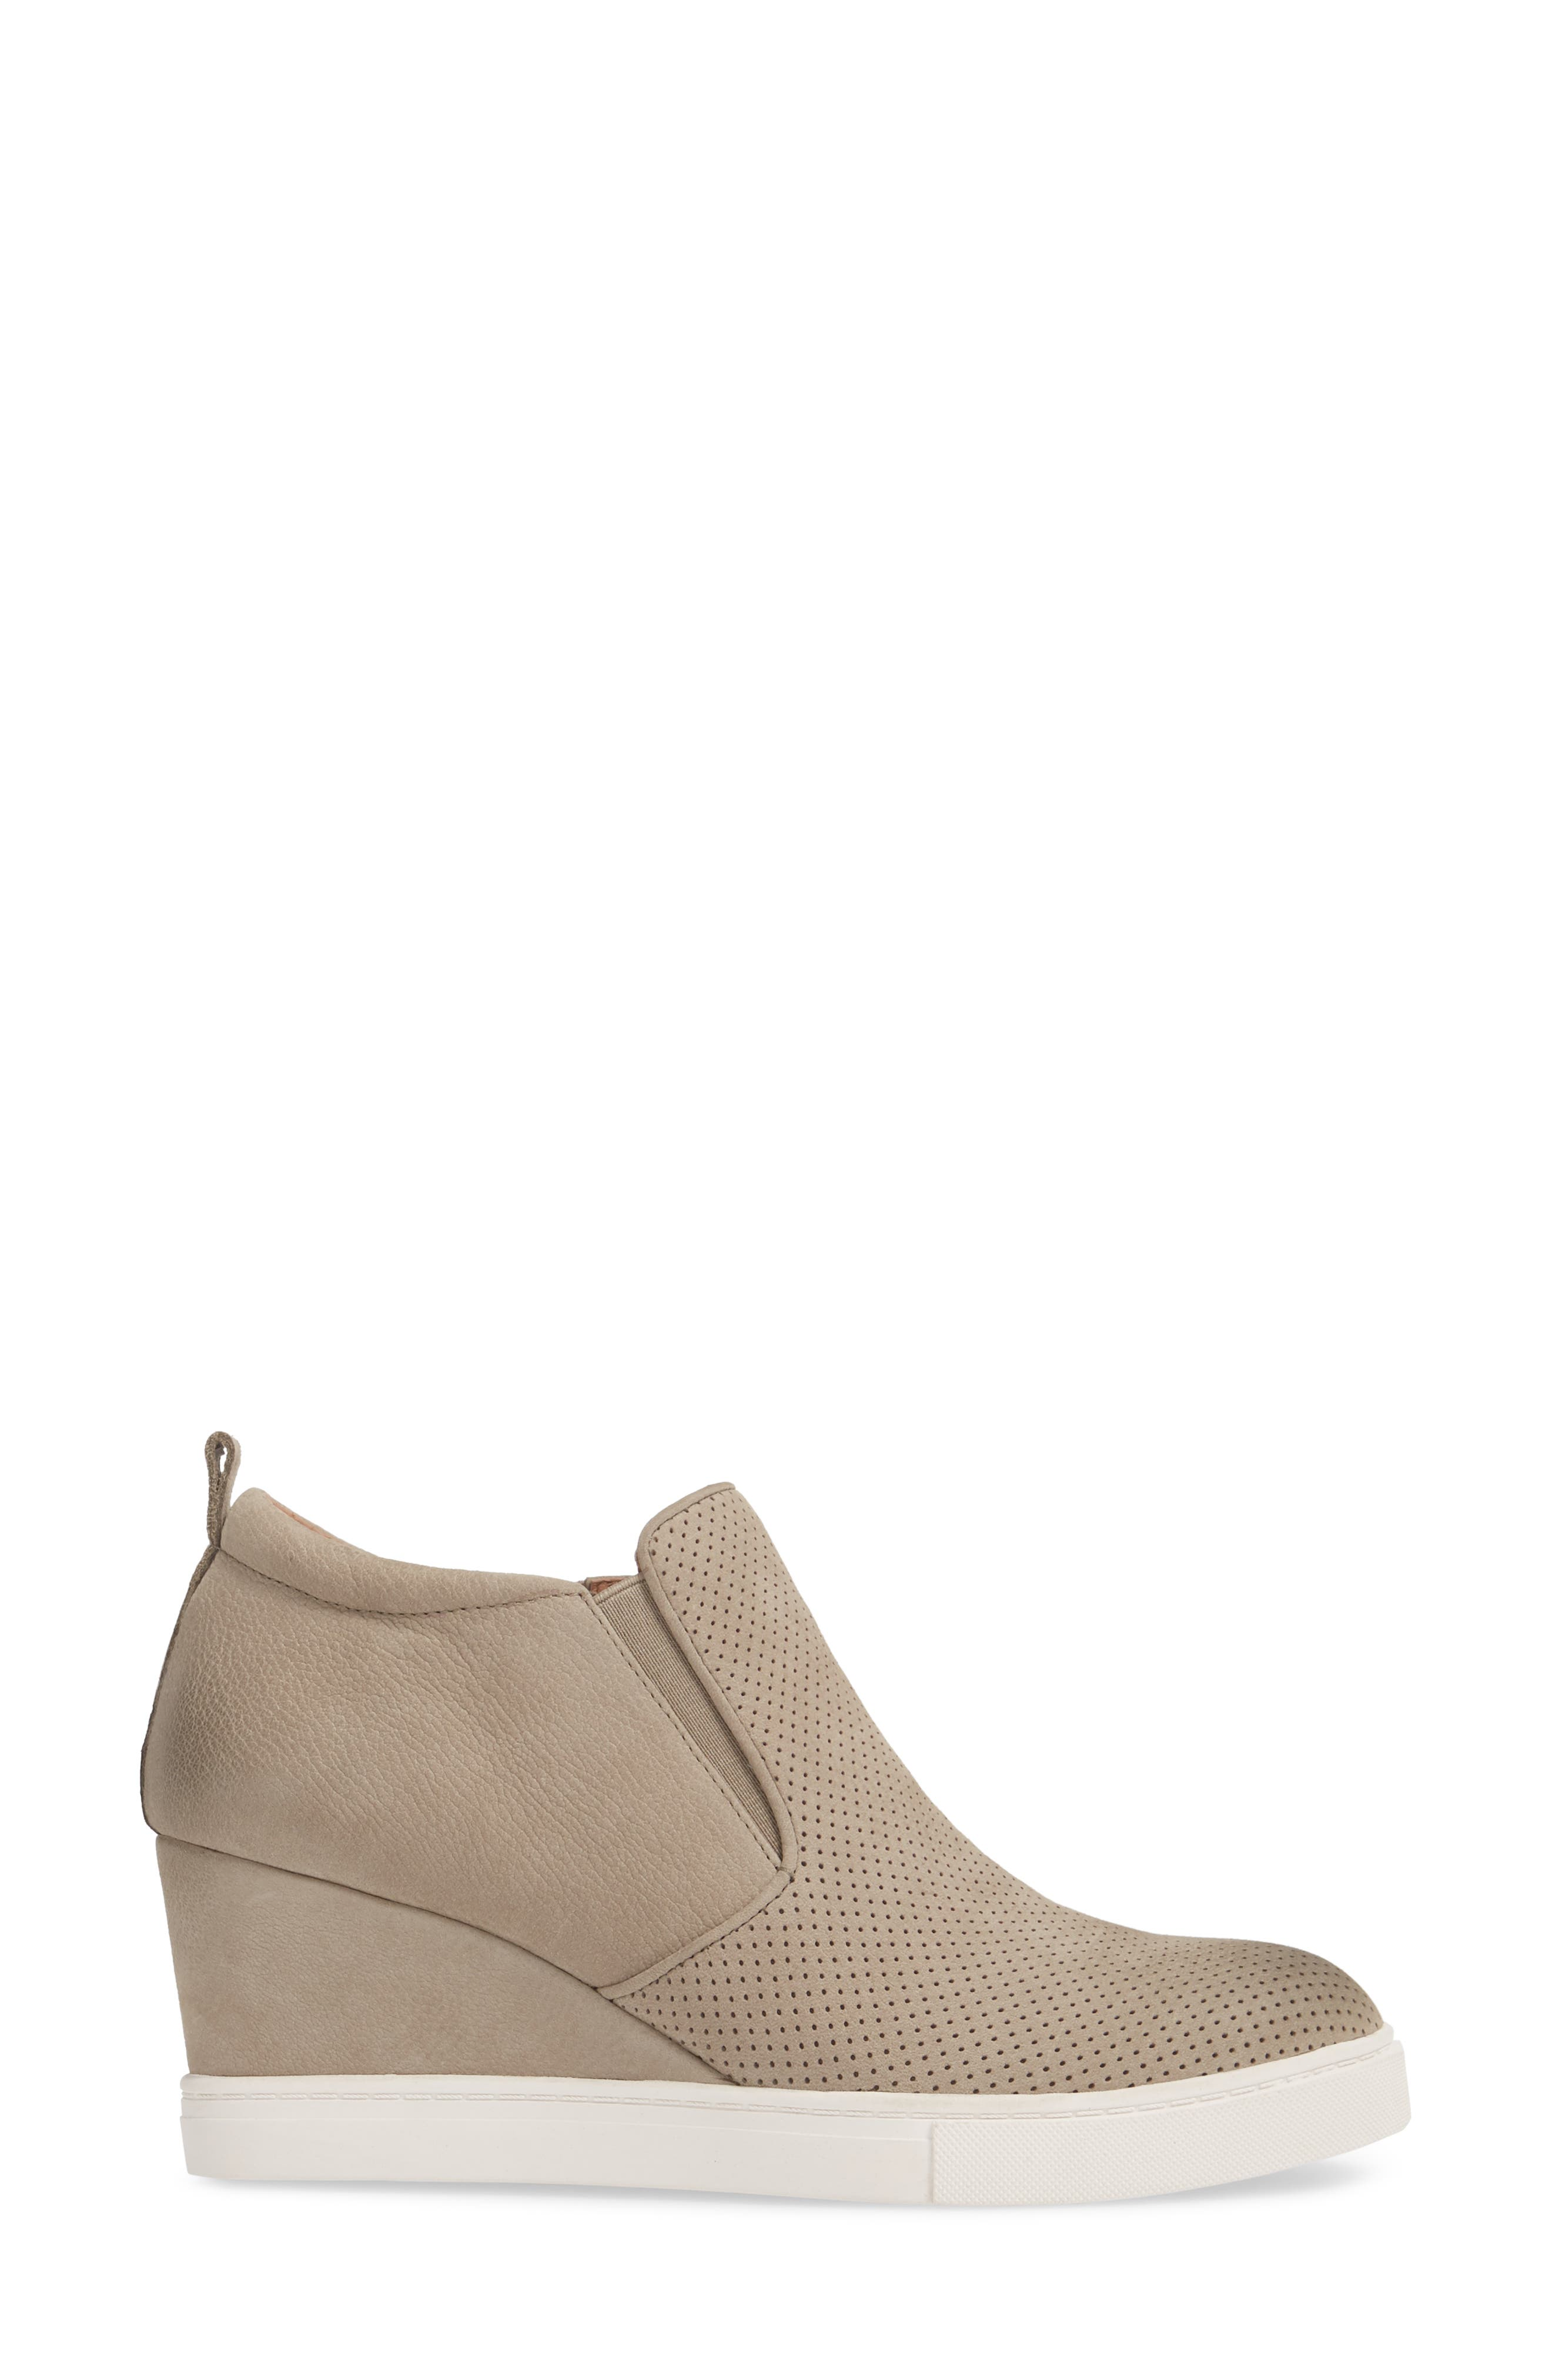 Aiden Wedge Sneaker,                             Alternate thumbnail 3, color,                             260